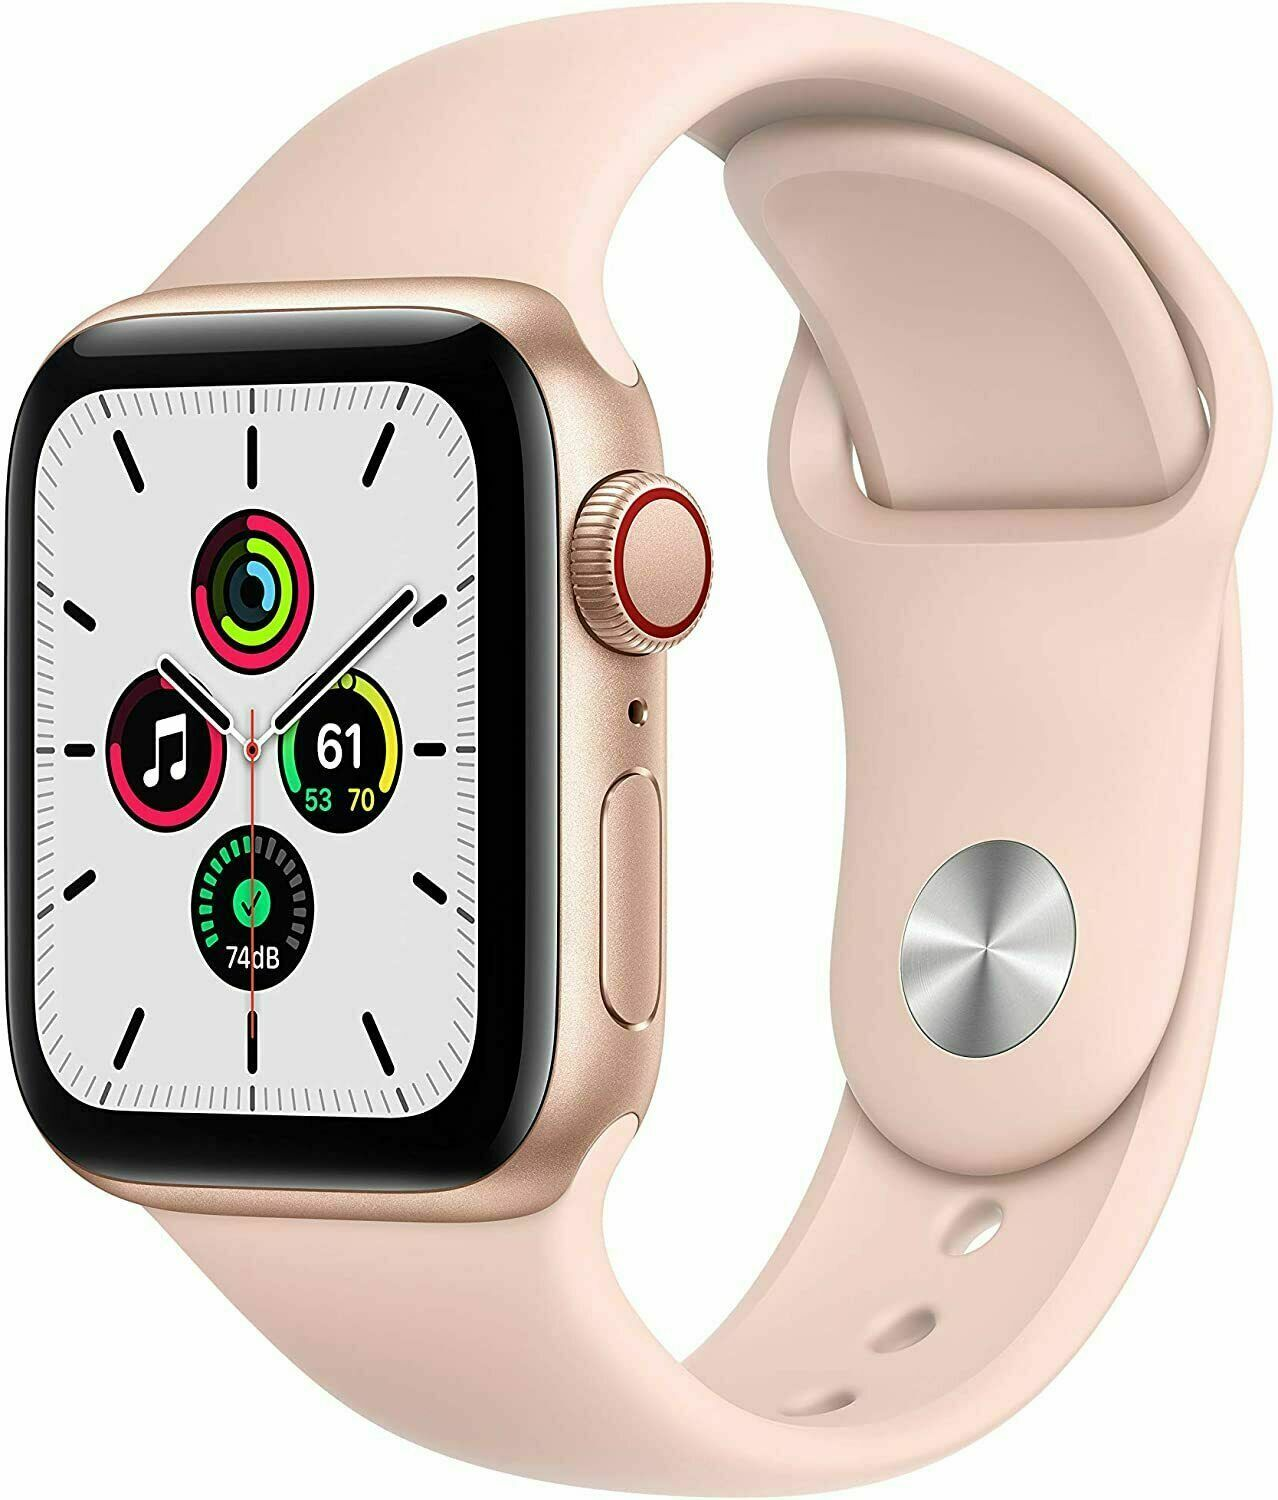 APPLE WATCH SE 40MM GOLD ALUMINUM CASE PINK SAND SPORT BAND